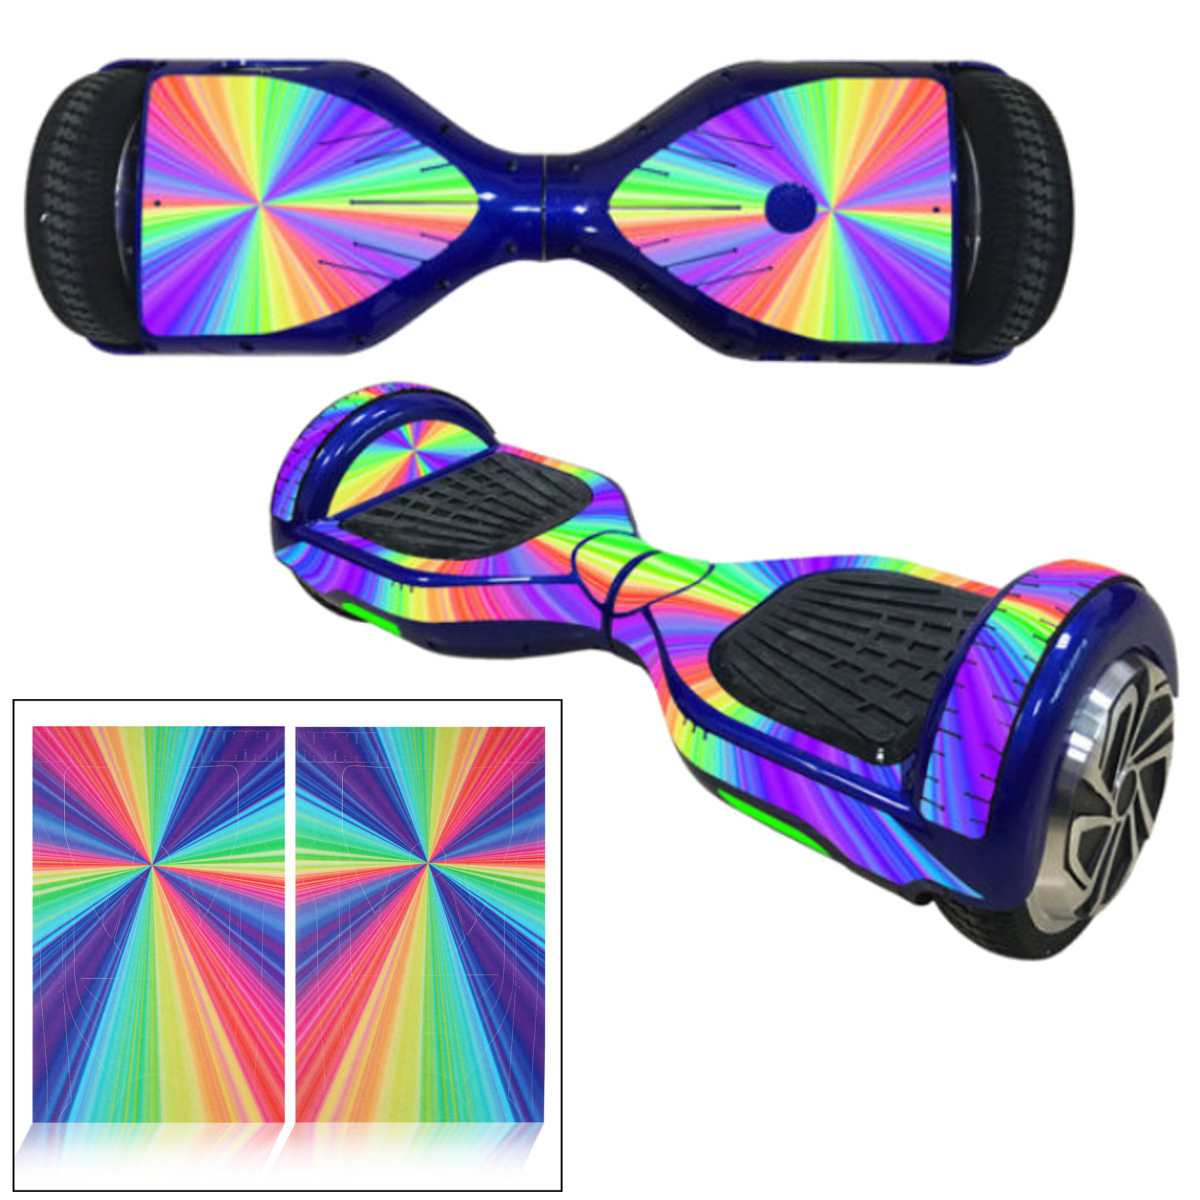 1pc 6.5 Inch Self-balancing Electric Scooter Wheel Board Protective PVC Cover Skin Sticker Classic Hoverboards Decoration Decal